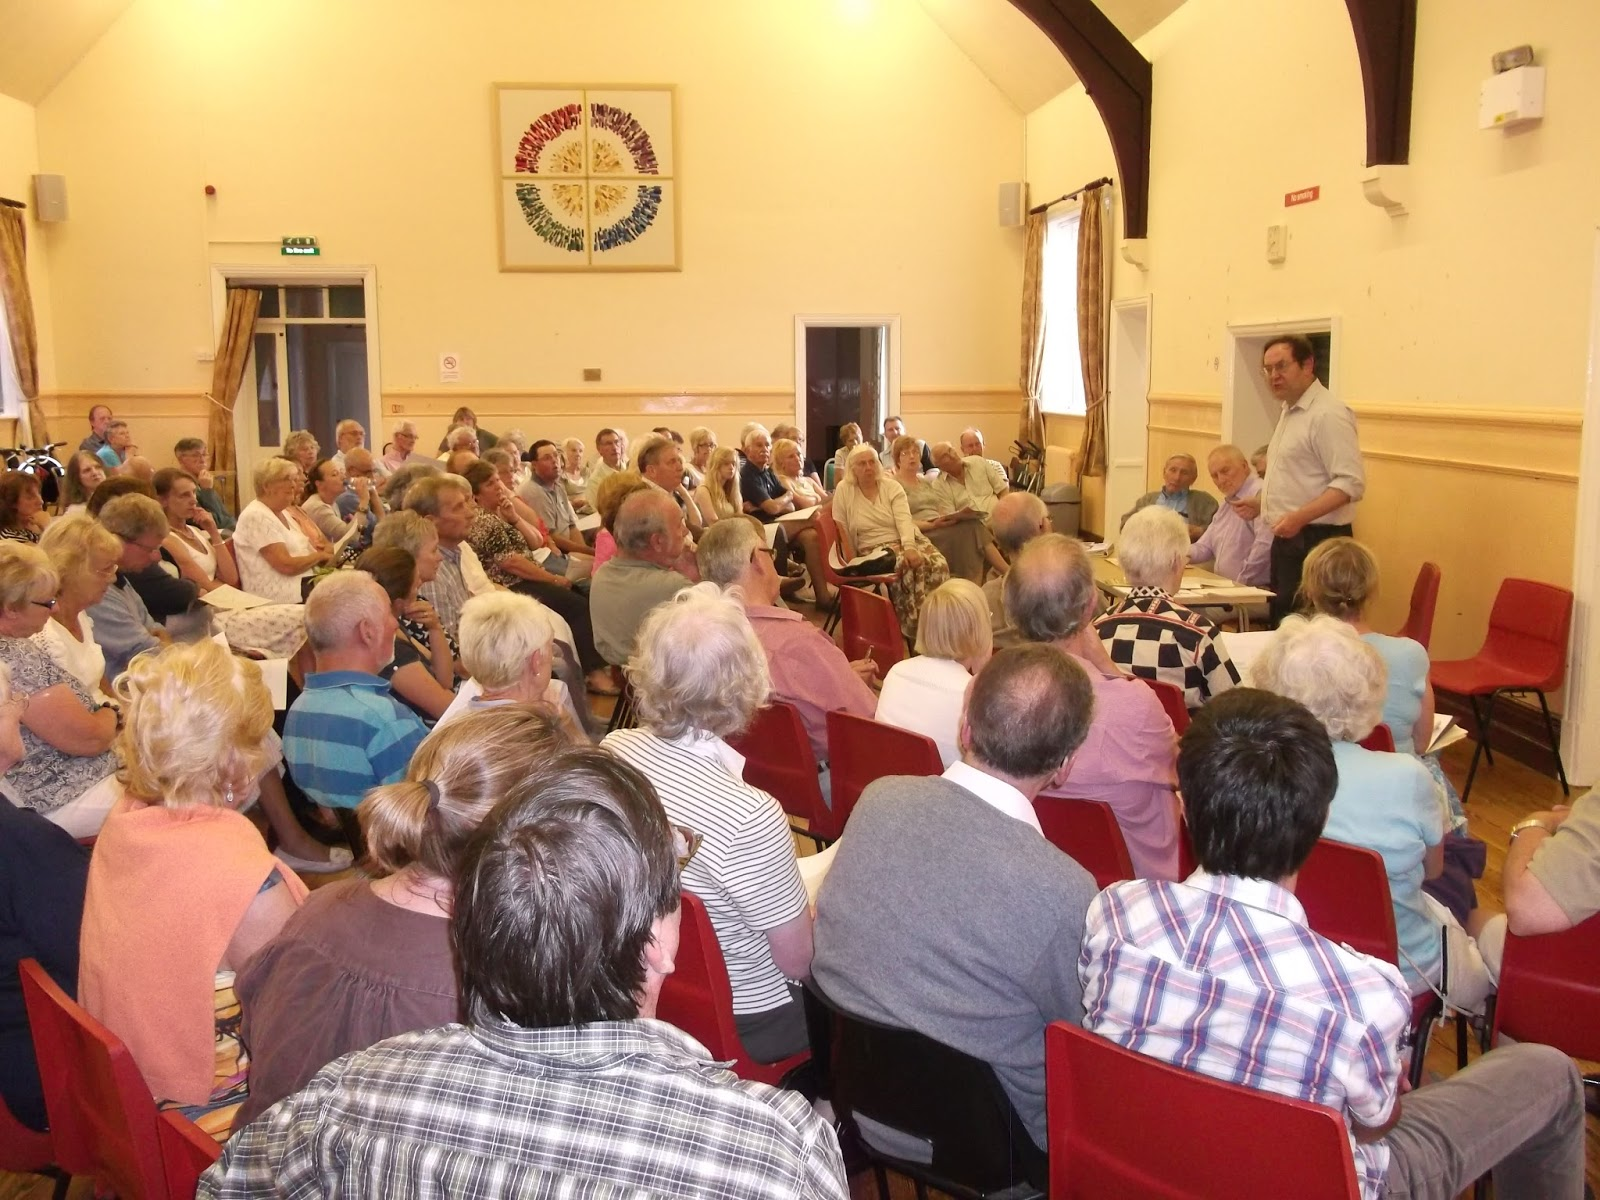 Transport Chair Cvs Gaming Chairs For Ps4 Birkdale Focus Packed Public Meeting Plans Action Over